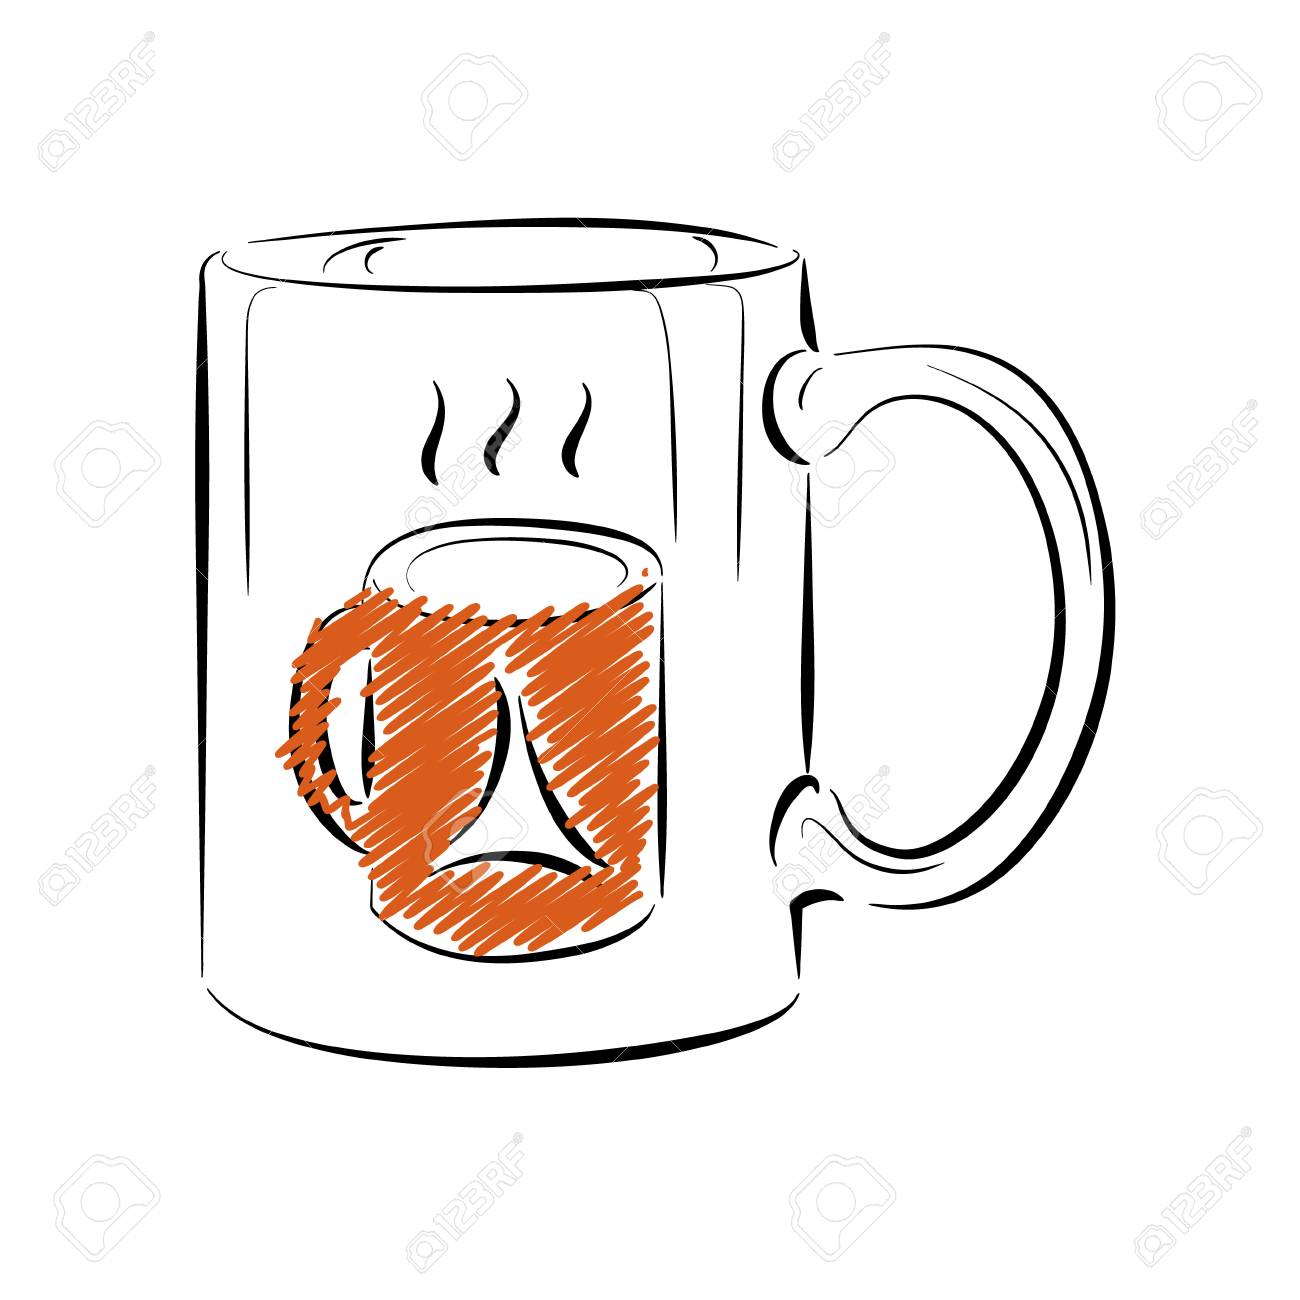 Coffee Mug Template In Outline Style Illustration. Royalty Free ...